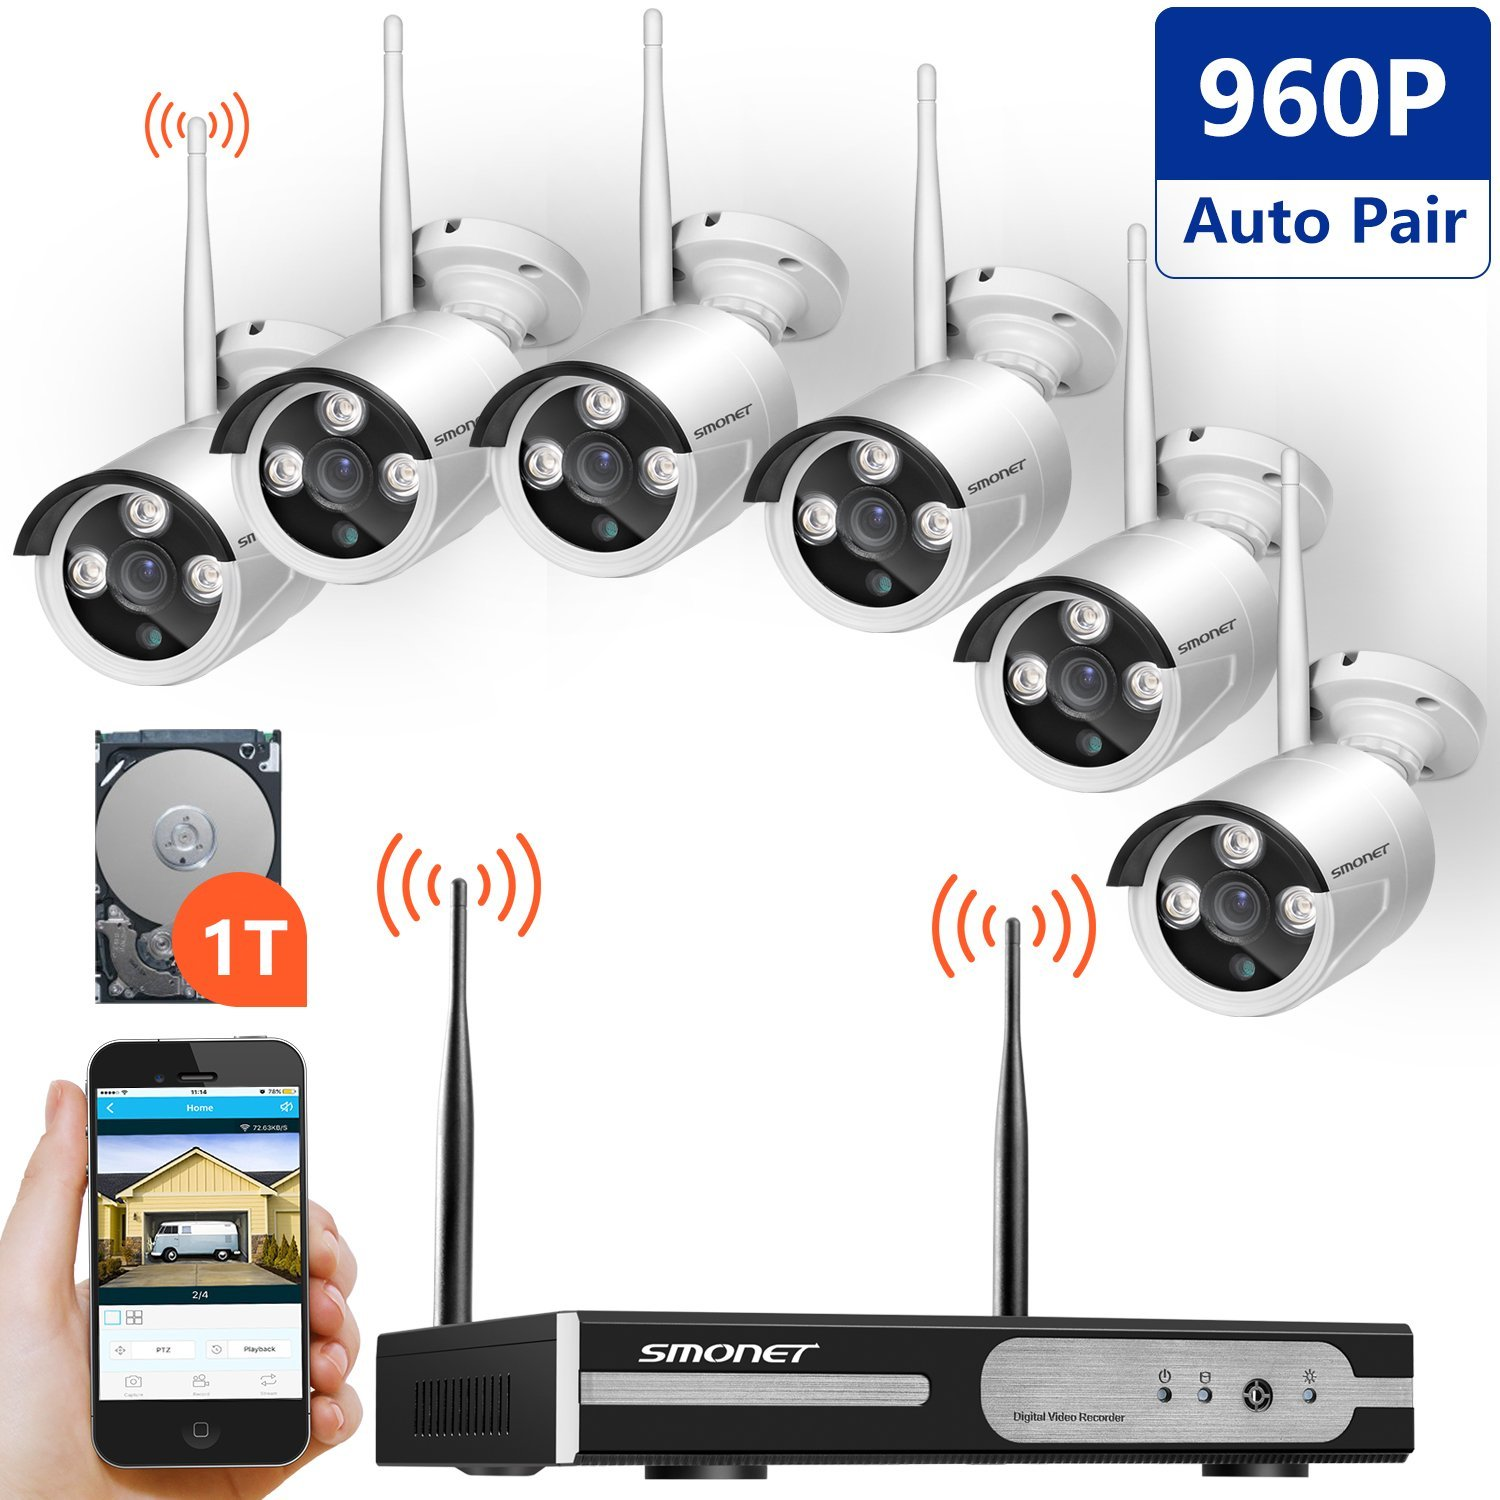 Smonet 6 Channel 960p Hd Wireless Video Security System Review